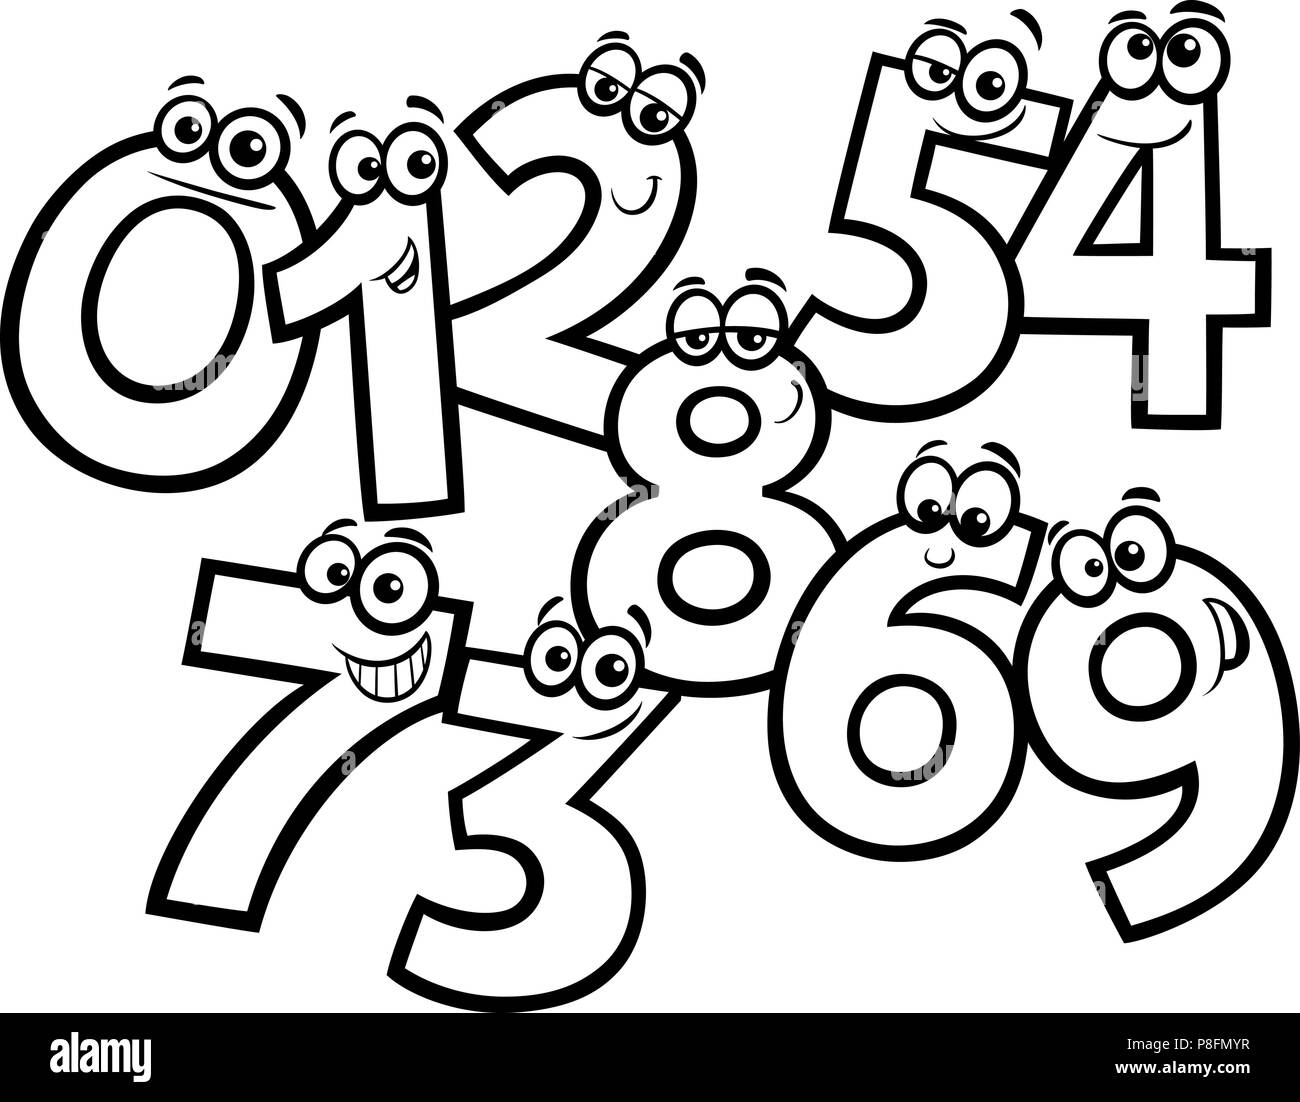 Black and white educational cartoon illustrations of basic numbers characters group coloring book